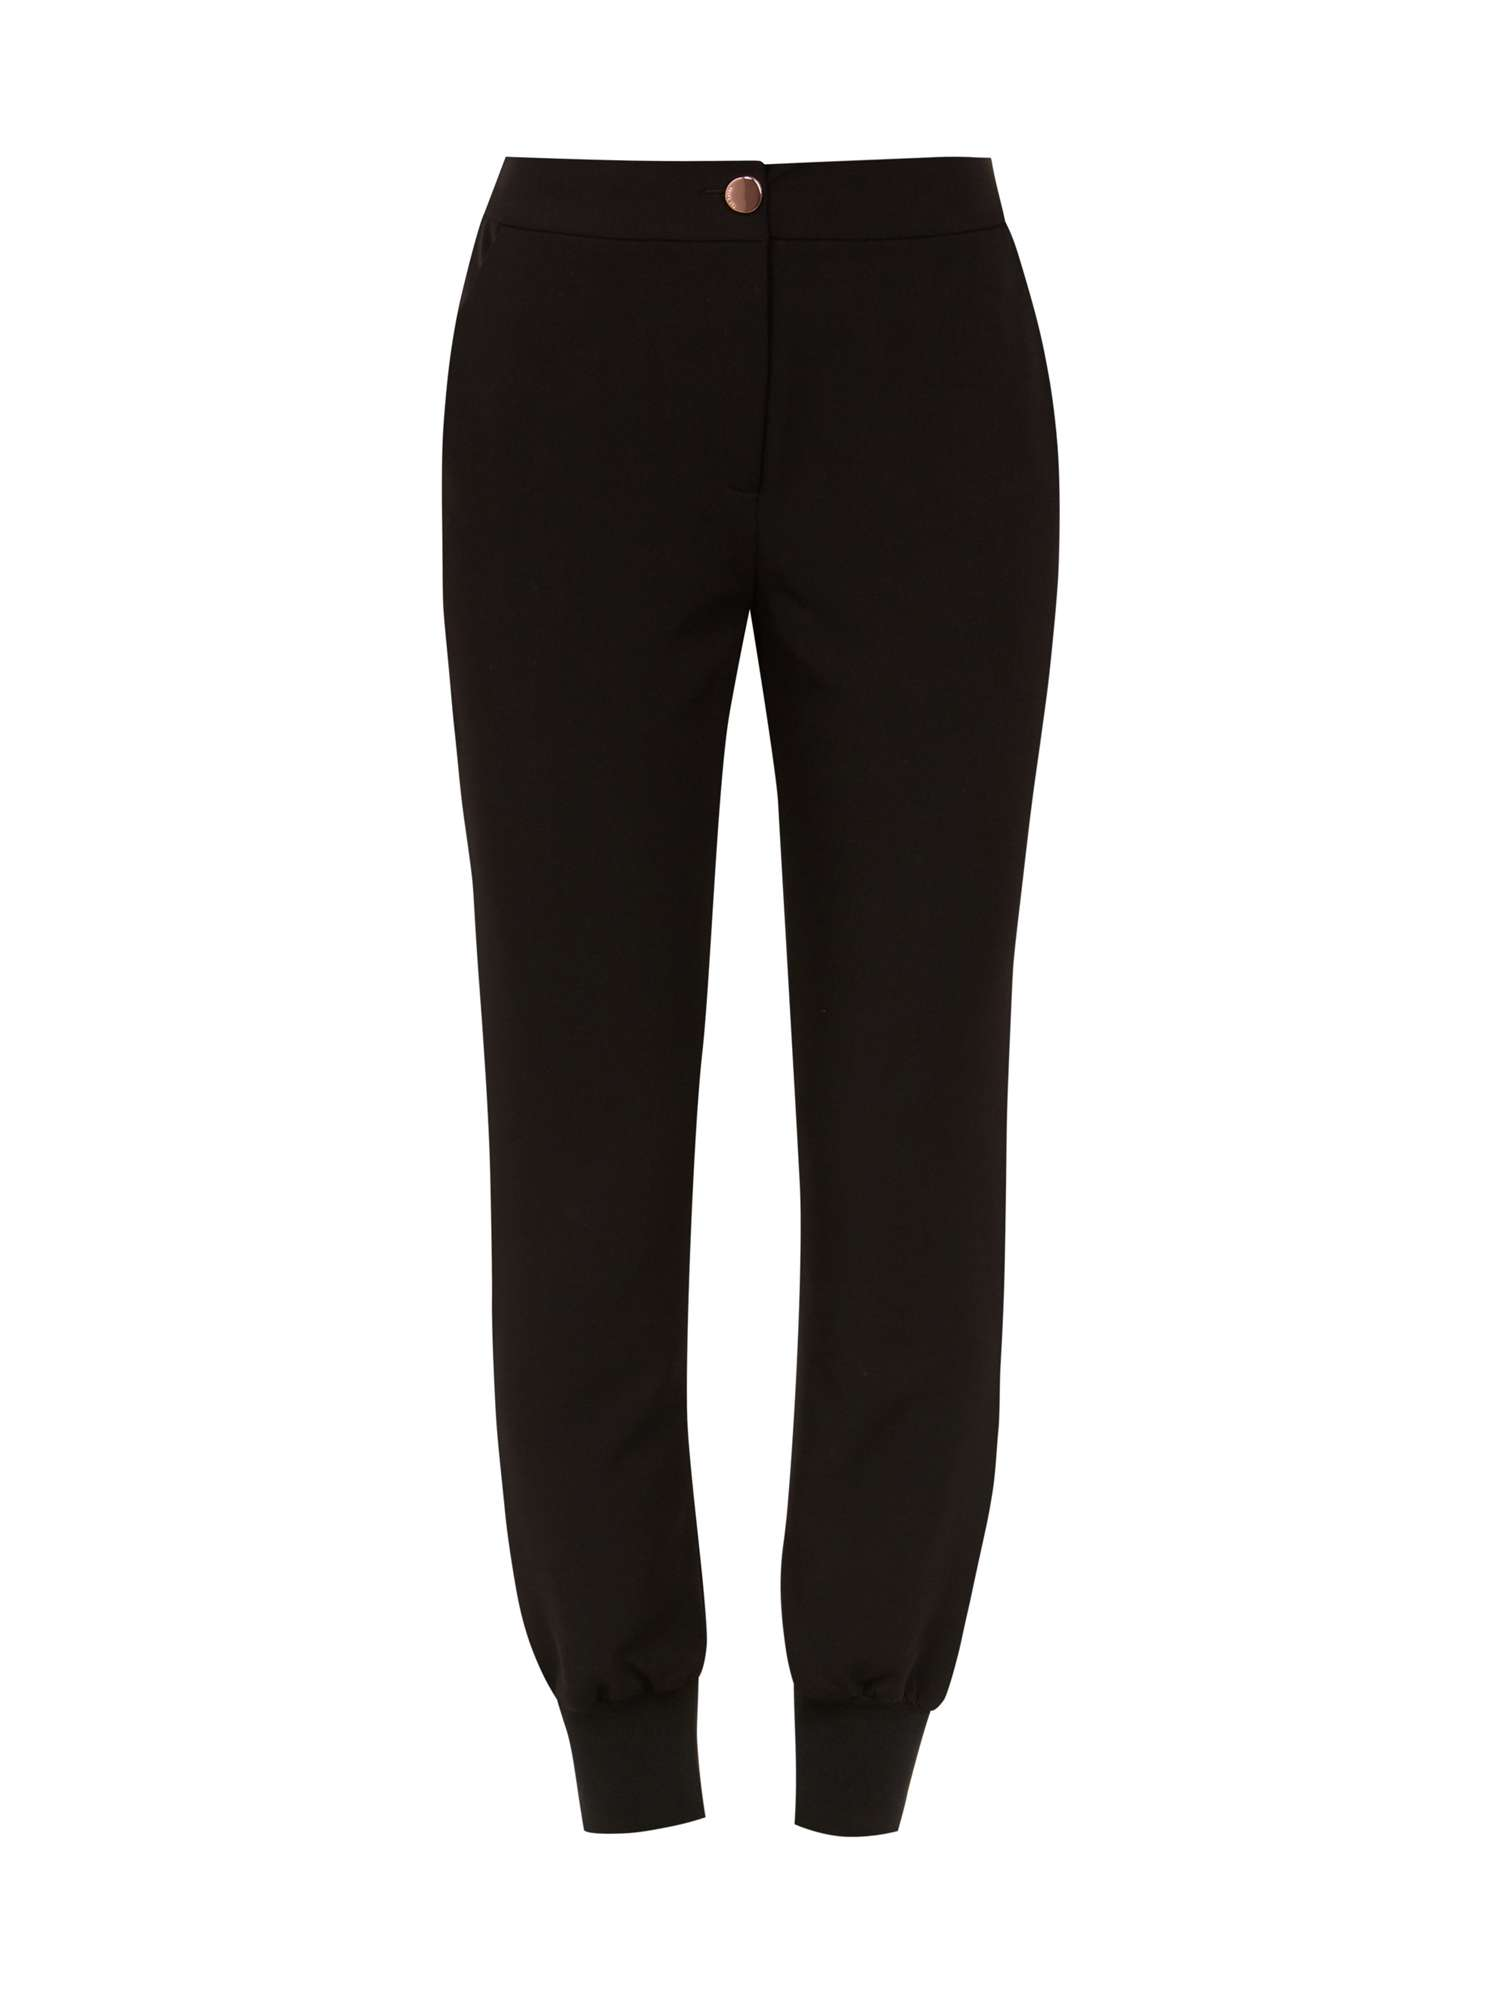 01dfbb820 Trousers Ted Ribbed Baker Mmargot Cuff Relaxed AxqpXY8 at dwell ...